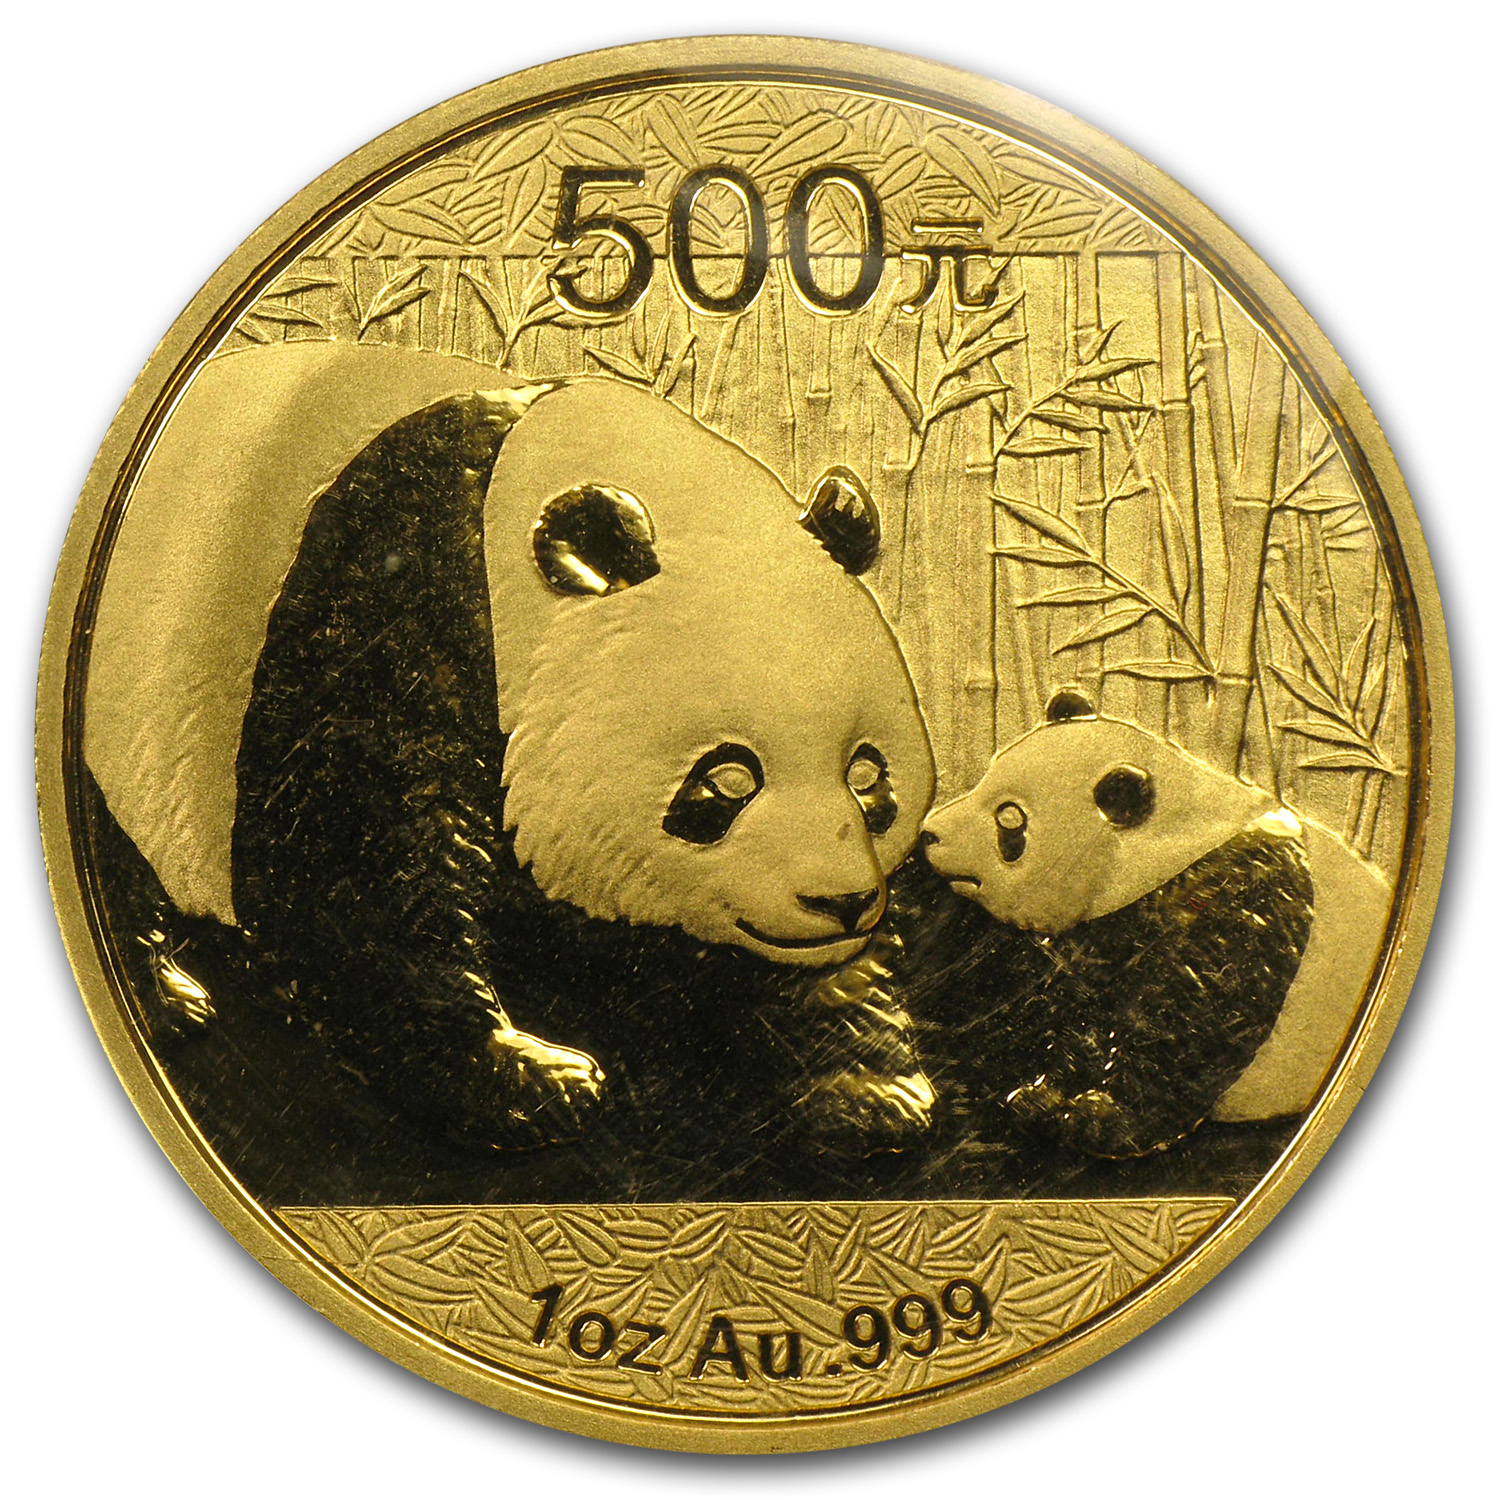 2011 1 oz Gold Chinese Panda BU (Sealed)